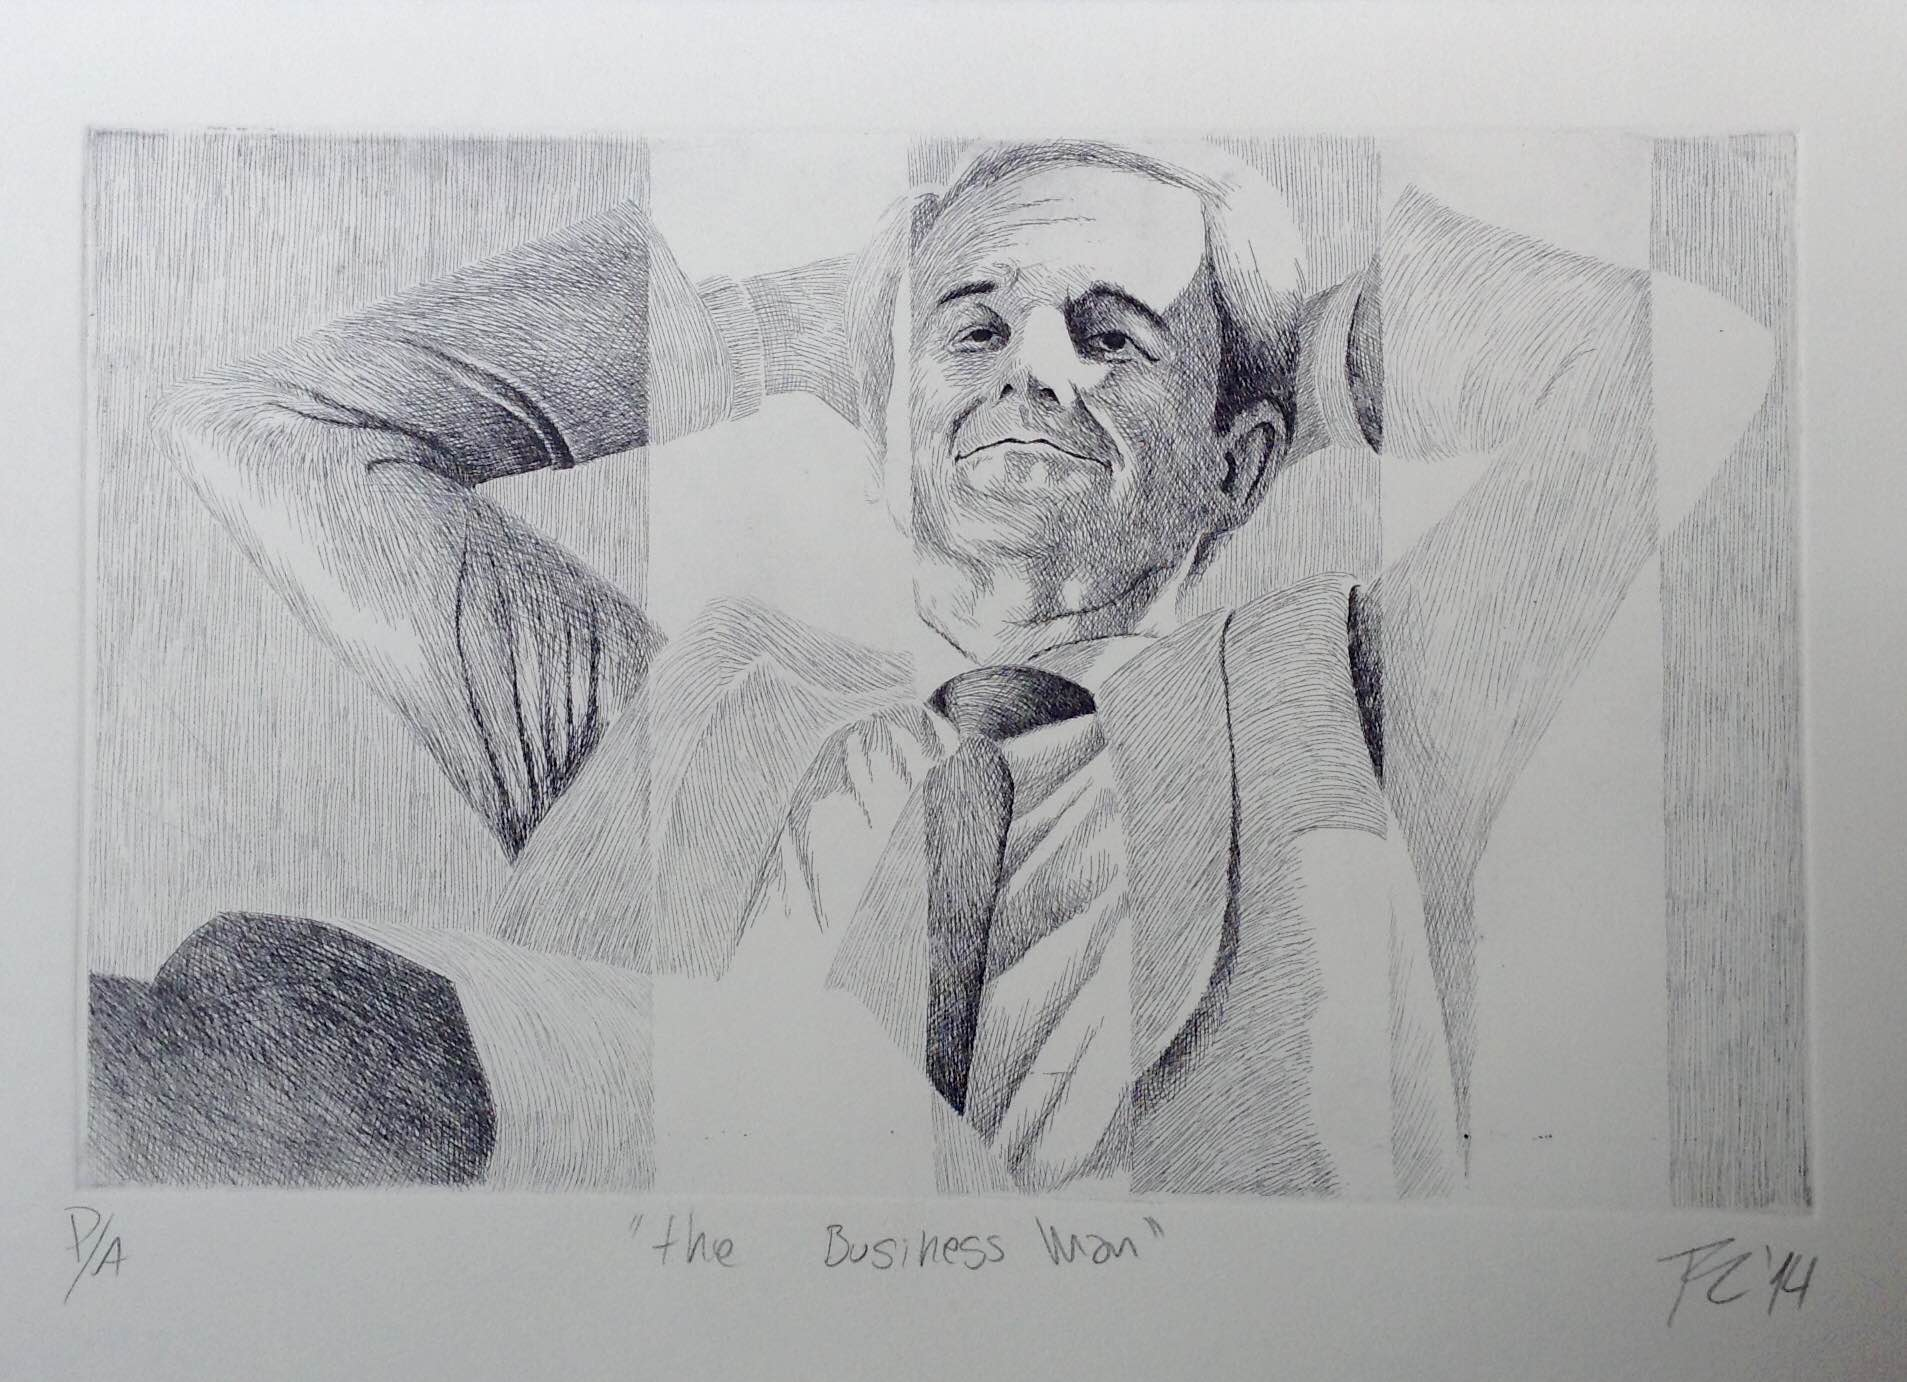 """The business man"", Aguafuerte"